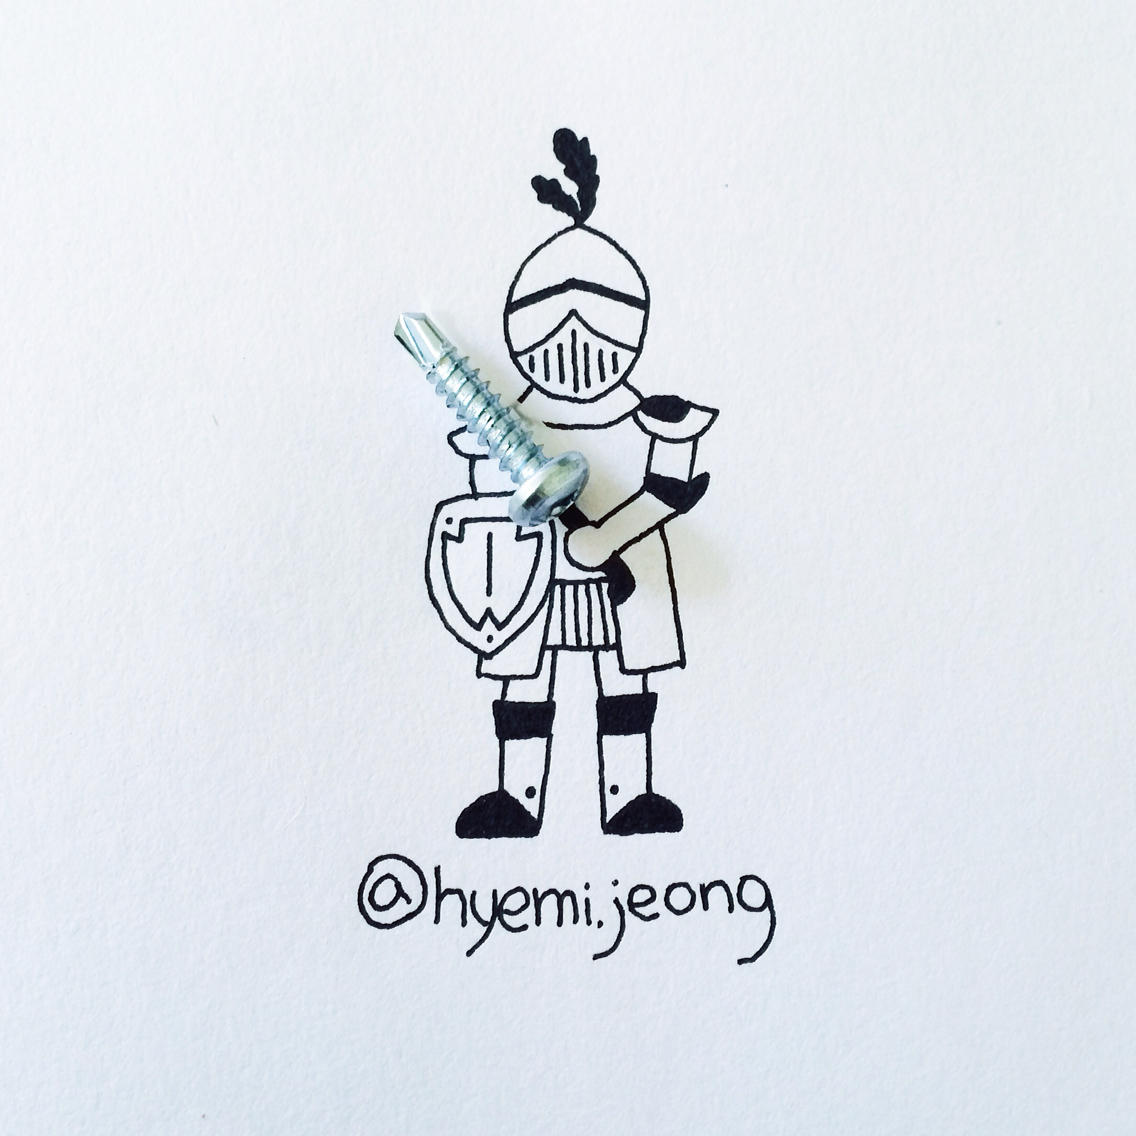 Knight - Art by Hyemi Jeong